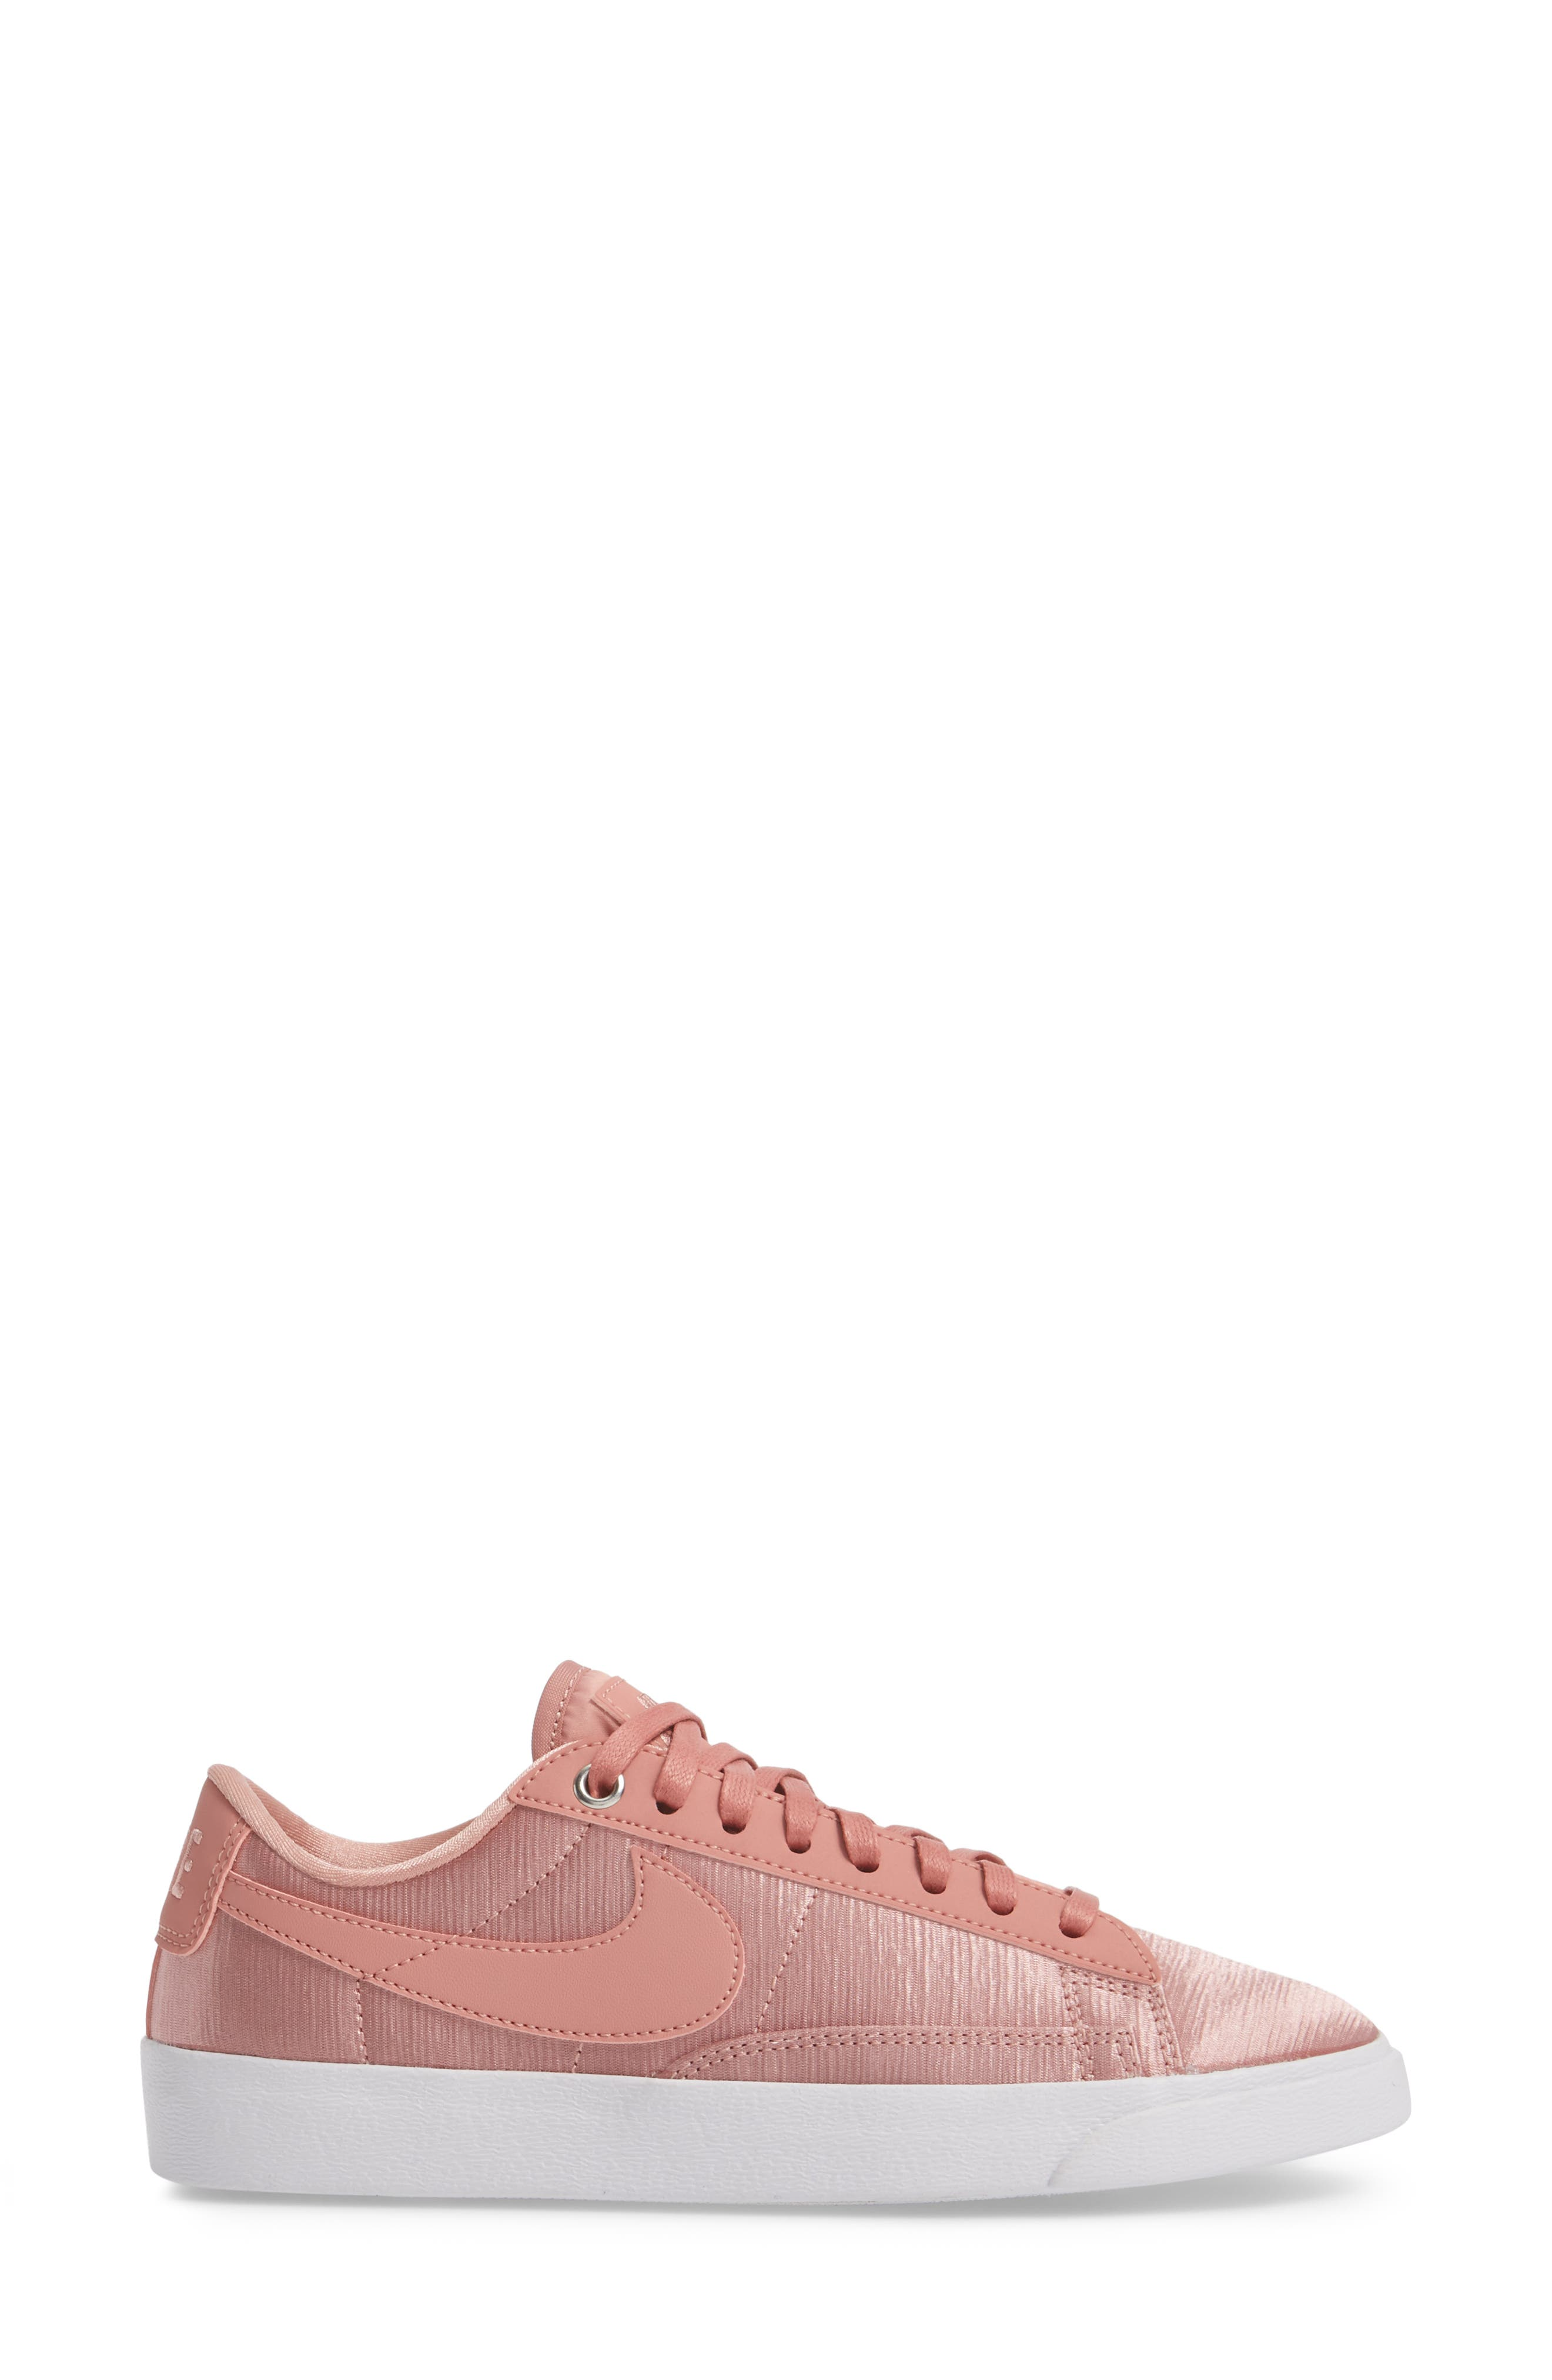 Blazer Low SE Sneaker,                             Alternate thumbnail 3, color,                             Rust Pink/ Rust Pink